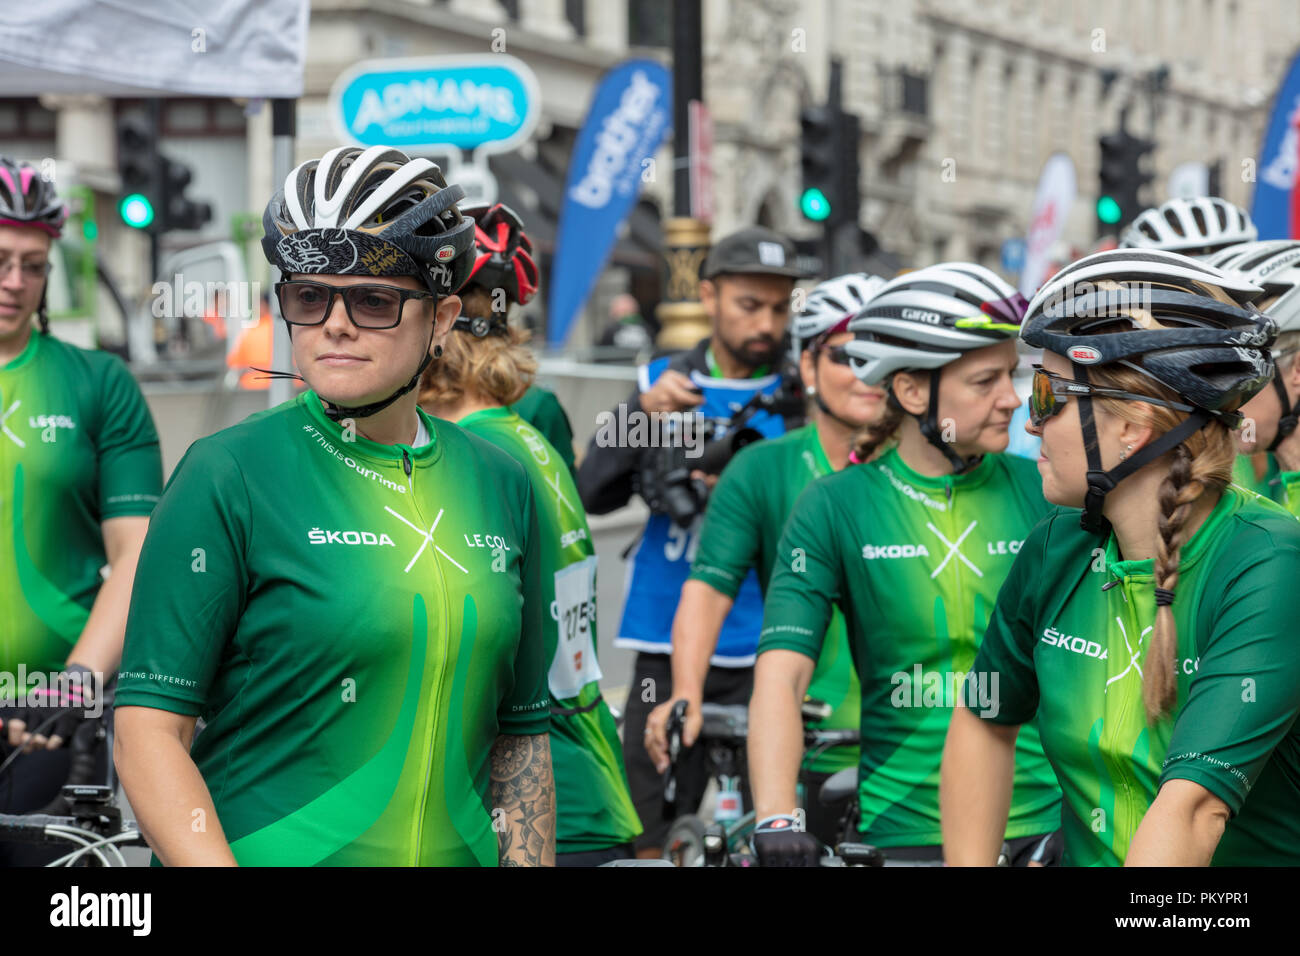 HSBC British Cycling Let's Ride Westminster Event. Female team cyclists waiting for the start of the non competitive race in central London. Stock Photo